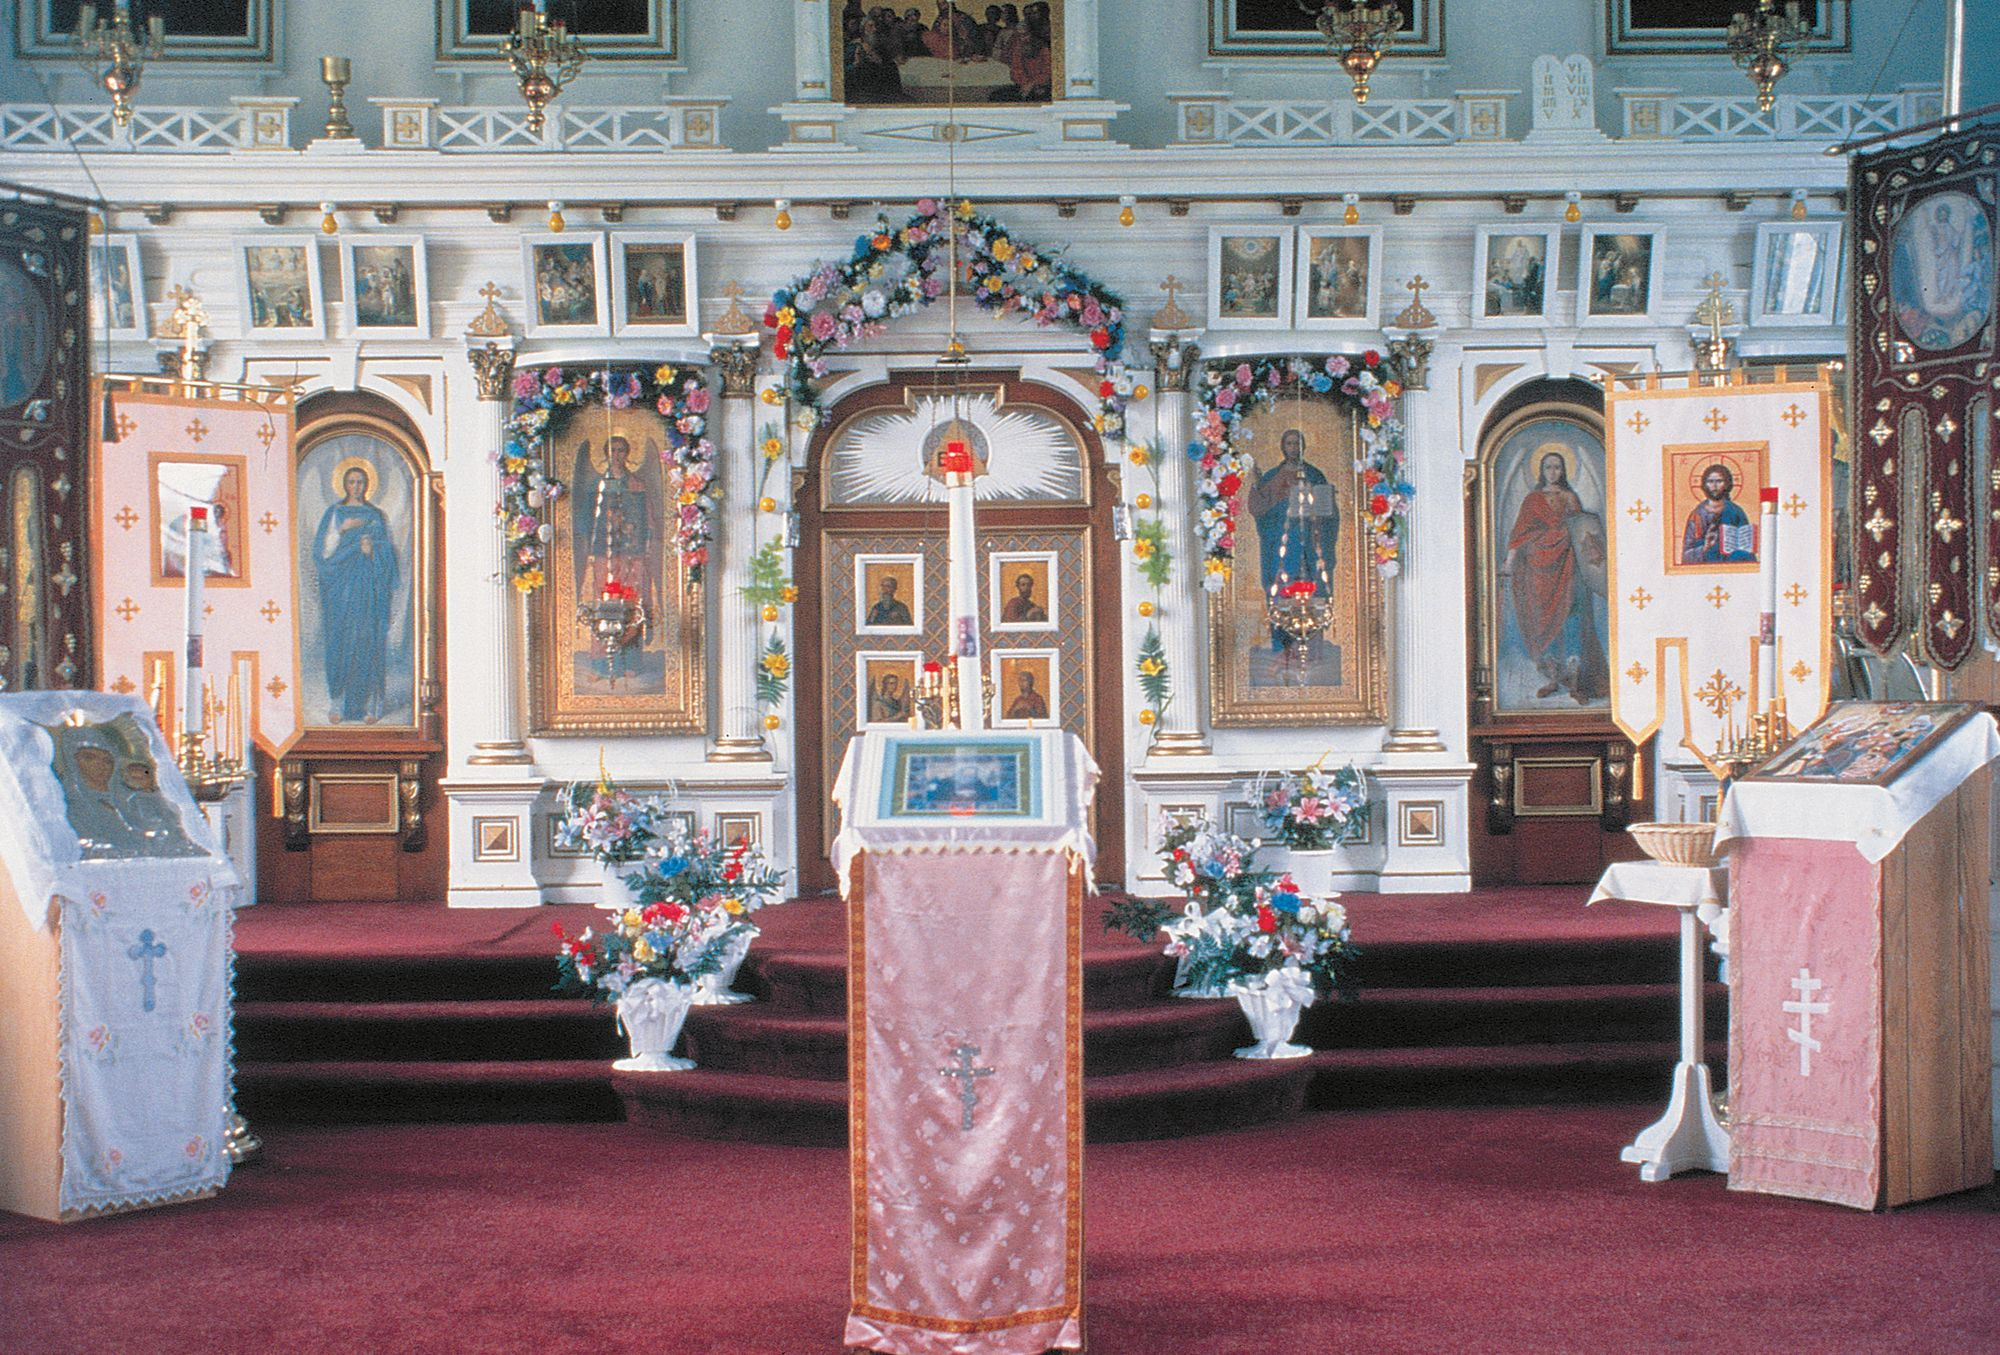 St Michael s Russian Orthodox Church Interior Sitka Alaska   Google     St Michael s Russian Orthodox Church Interior Sitka Alaska   Google Search